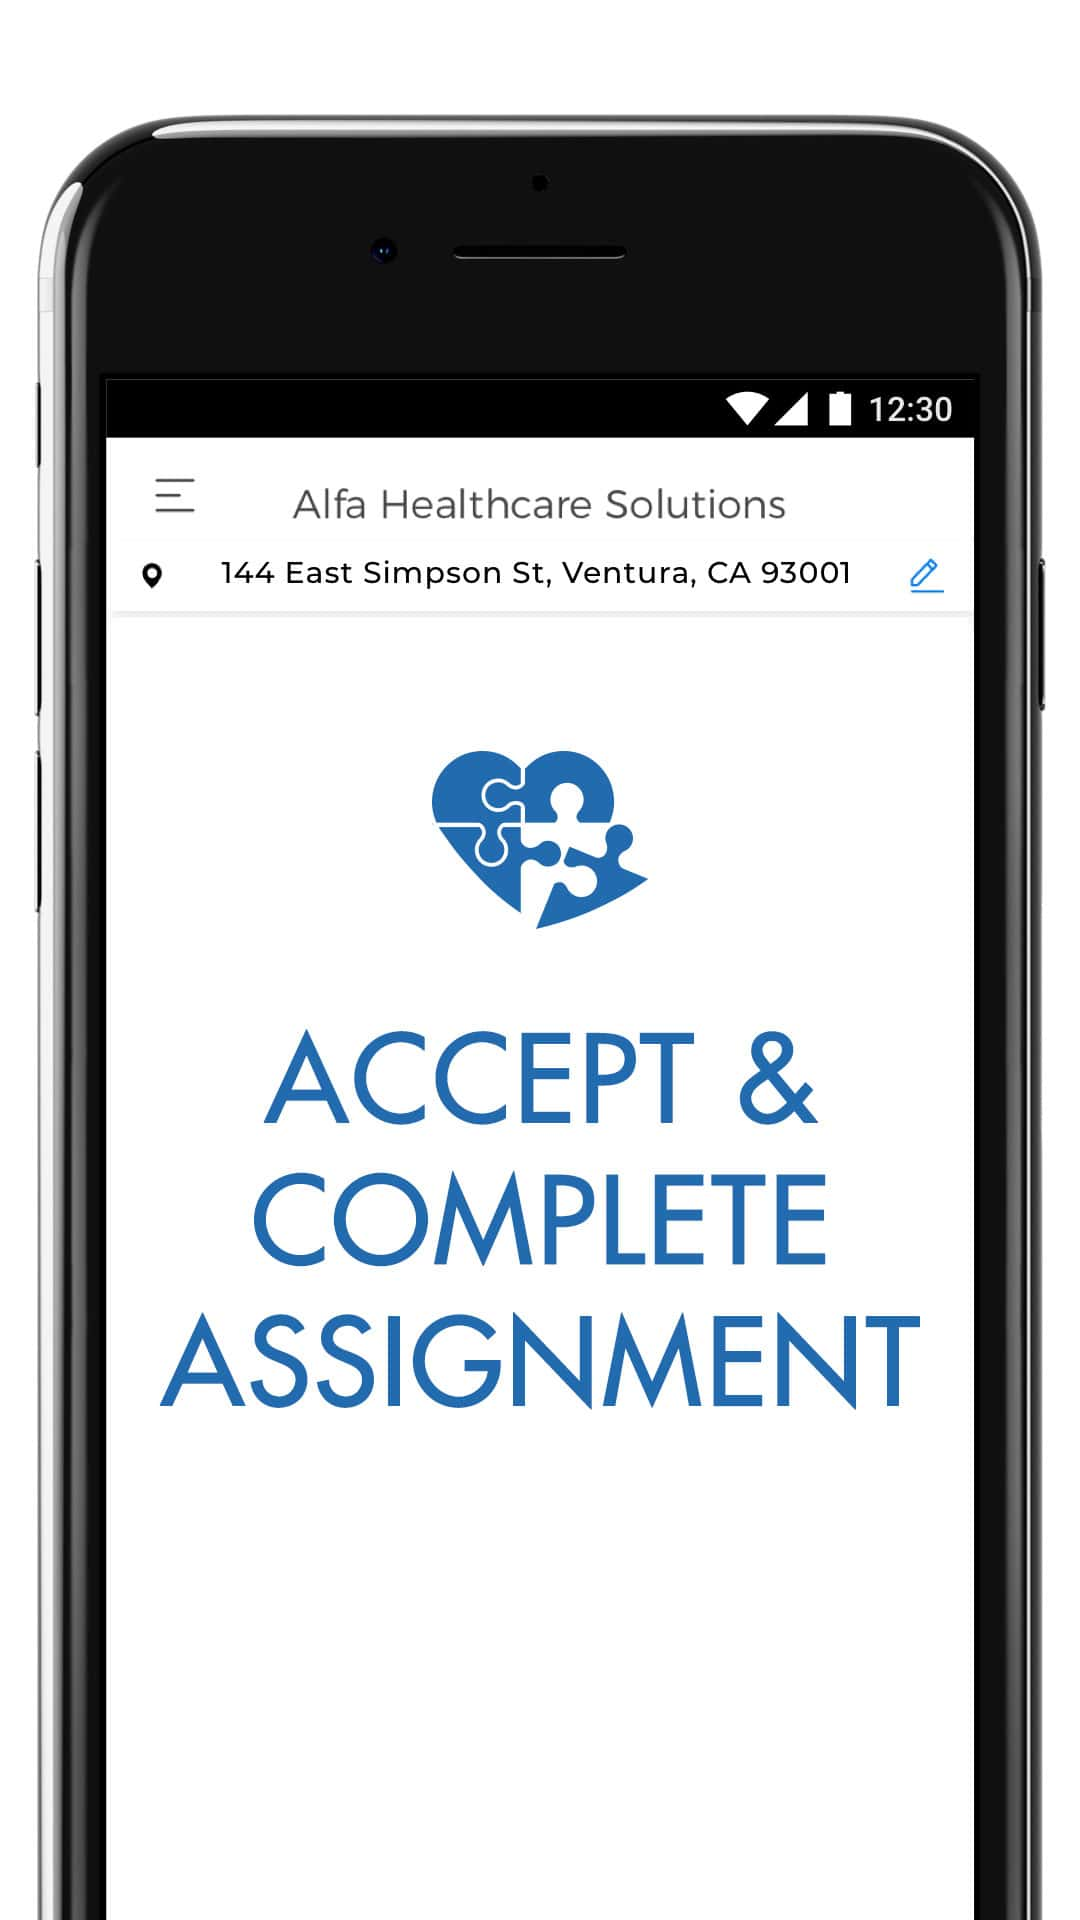 Accept and Complete Assignment